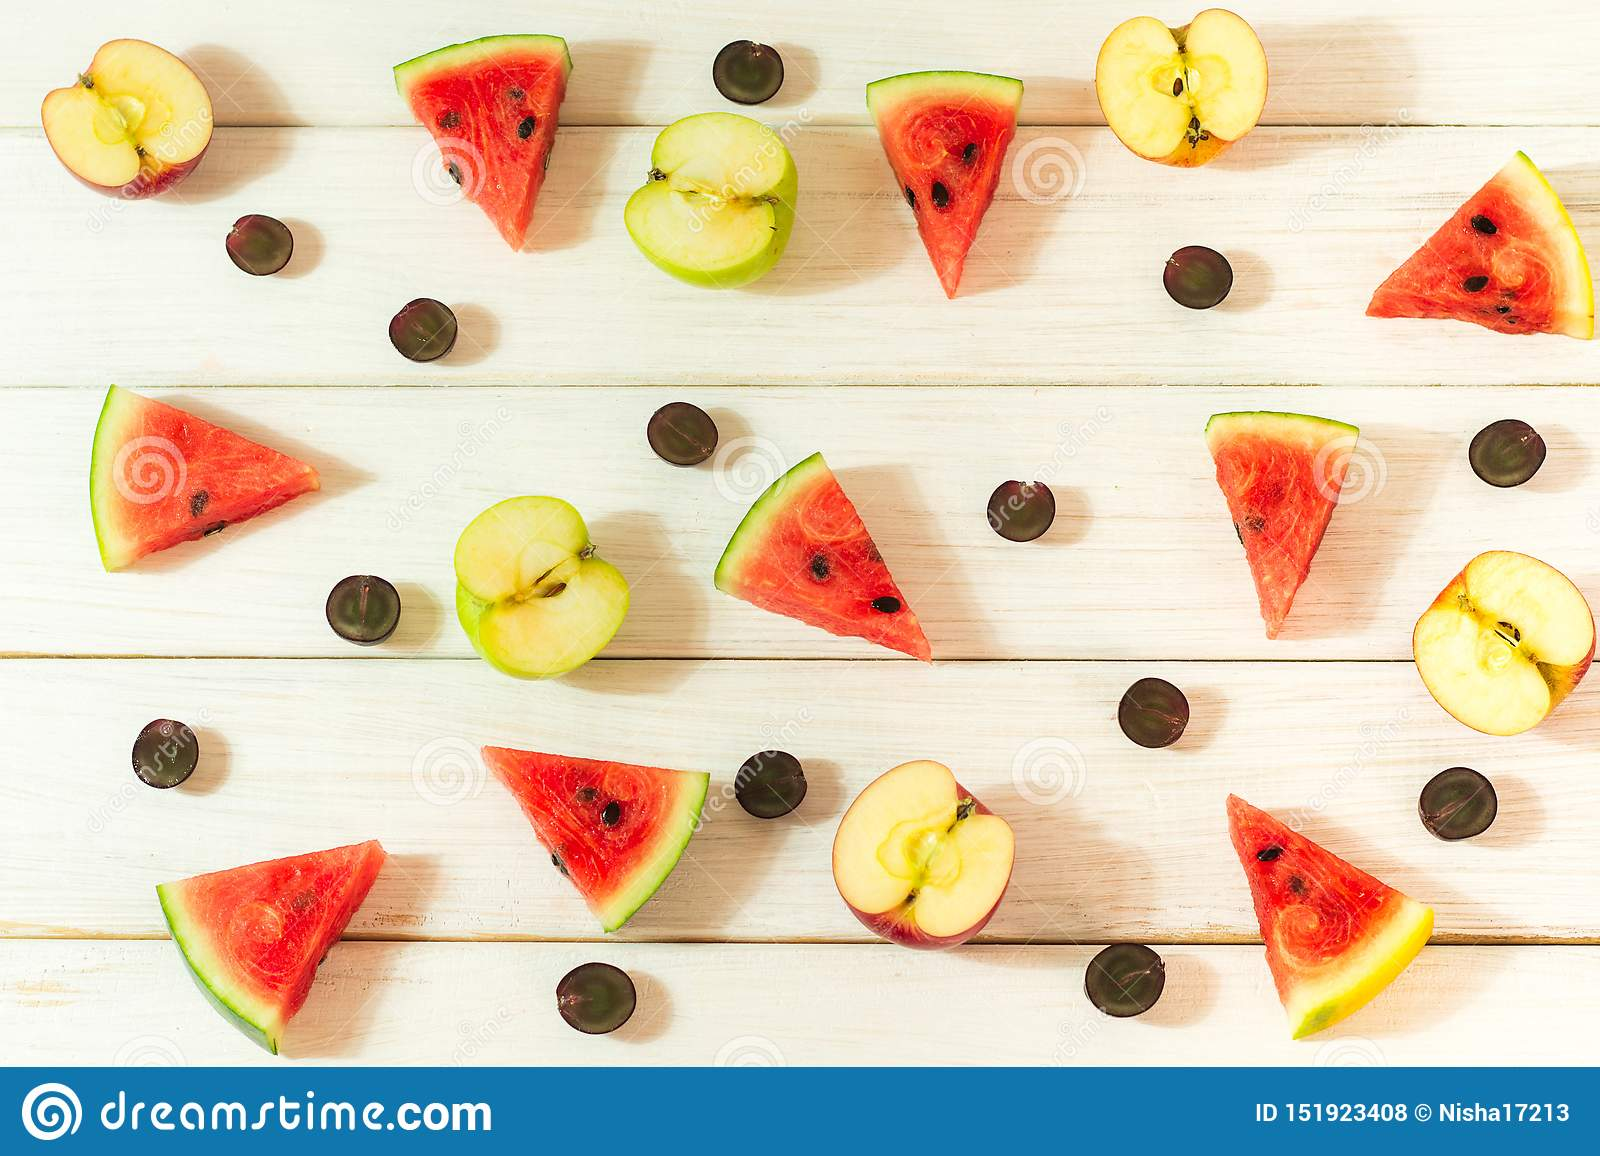 Watermelon and apples cut into small pieces